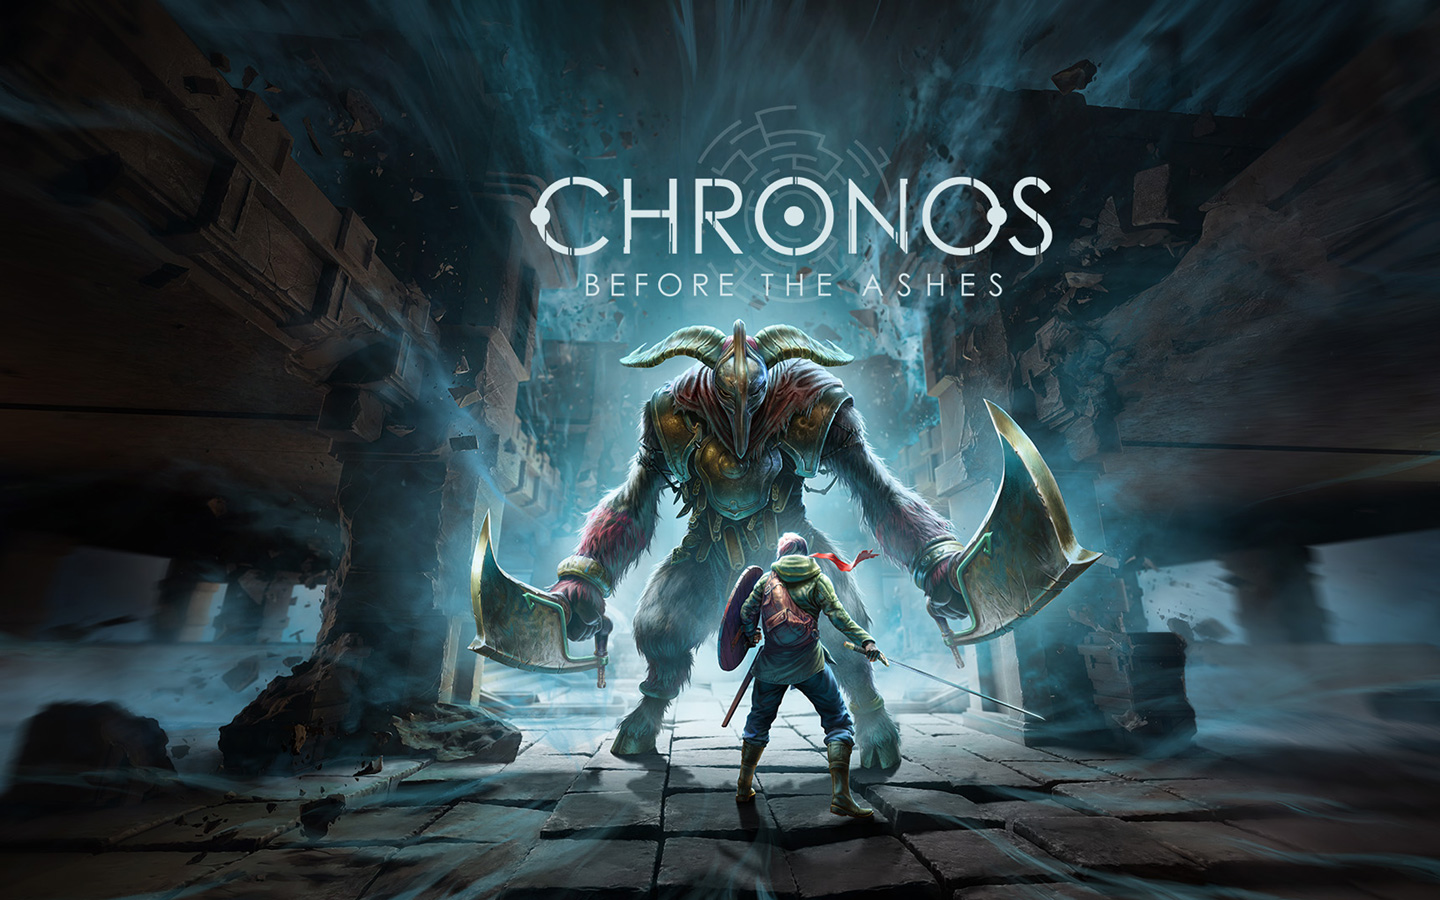 Free Chronos: Before the Ashes Wallpaper in 1440x900